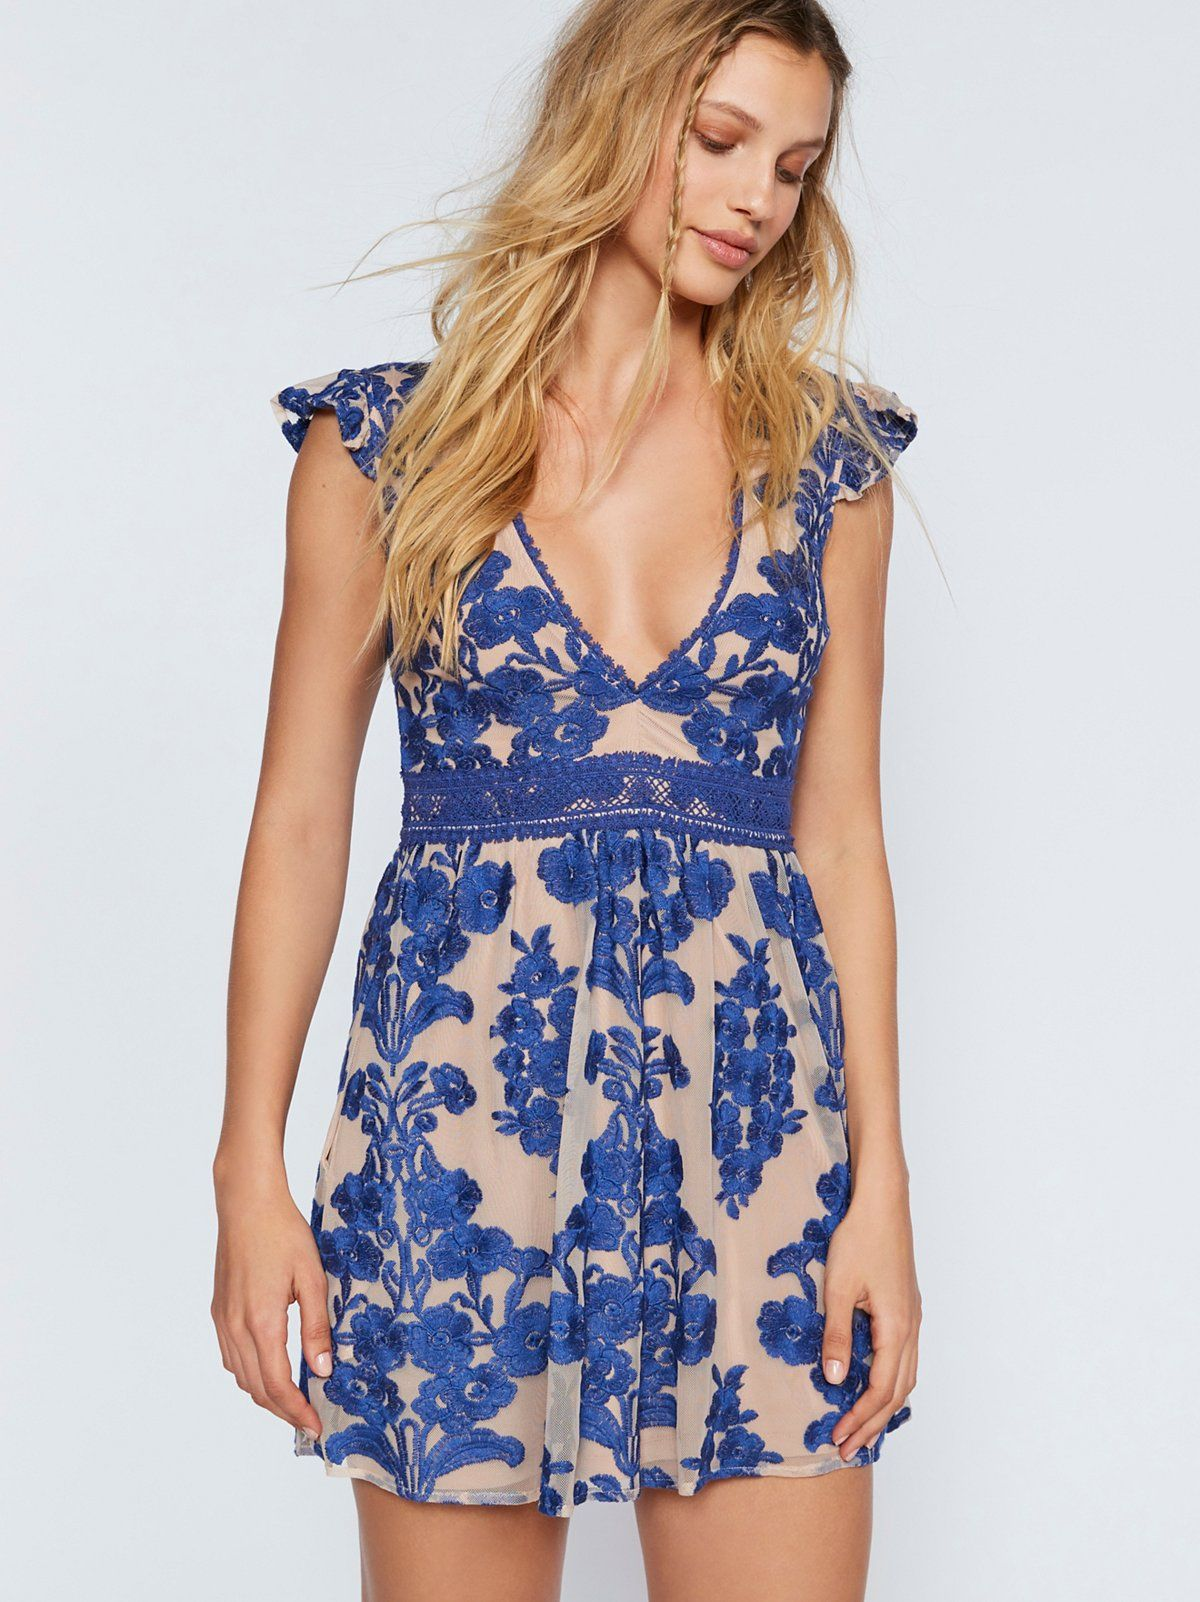 Temecula fit and flare femme fitandflare mini dress featuring a